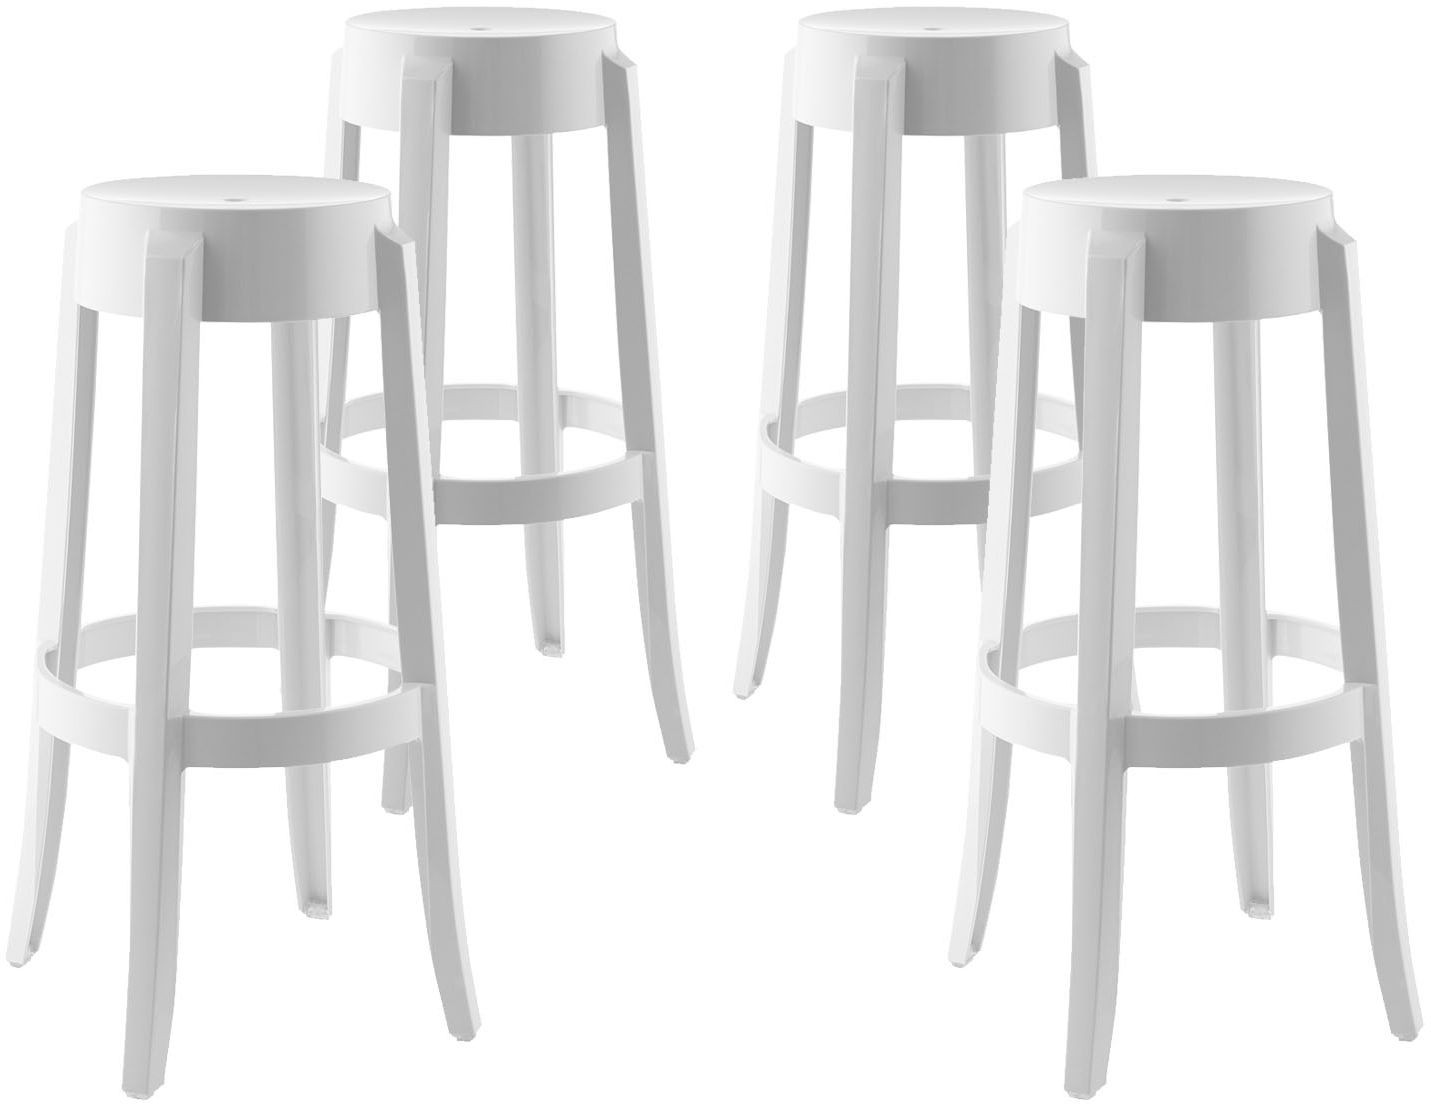 Casper White Bar Stool Set of 4 from Renegade Coleman  : eei 1680 whi from colemanfurniture.com size 1431 x 1104 jpeg 94kB